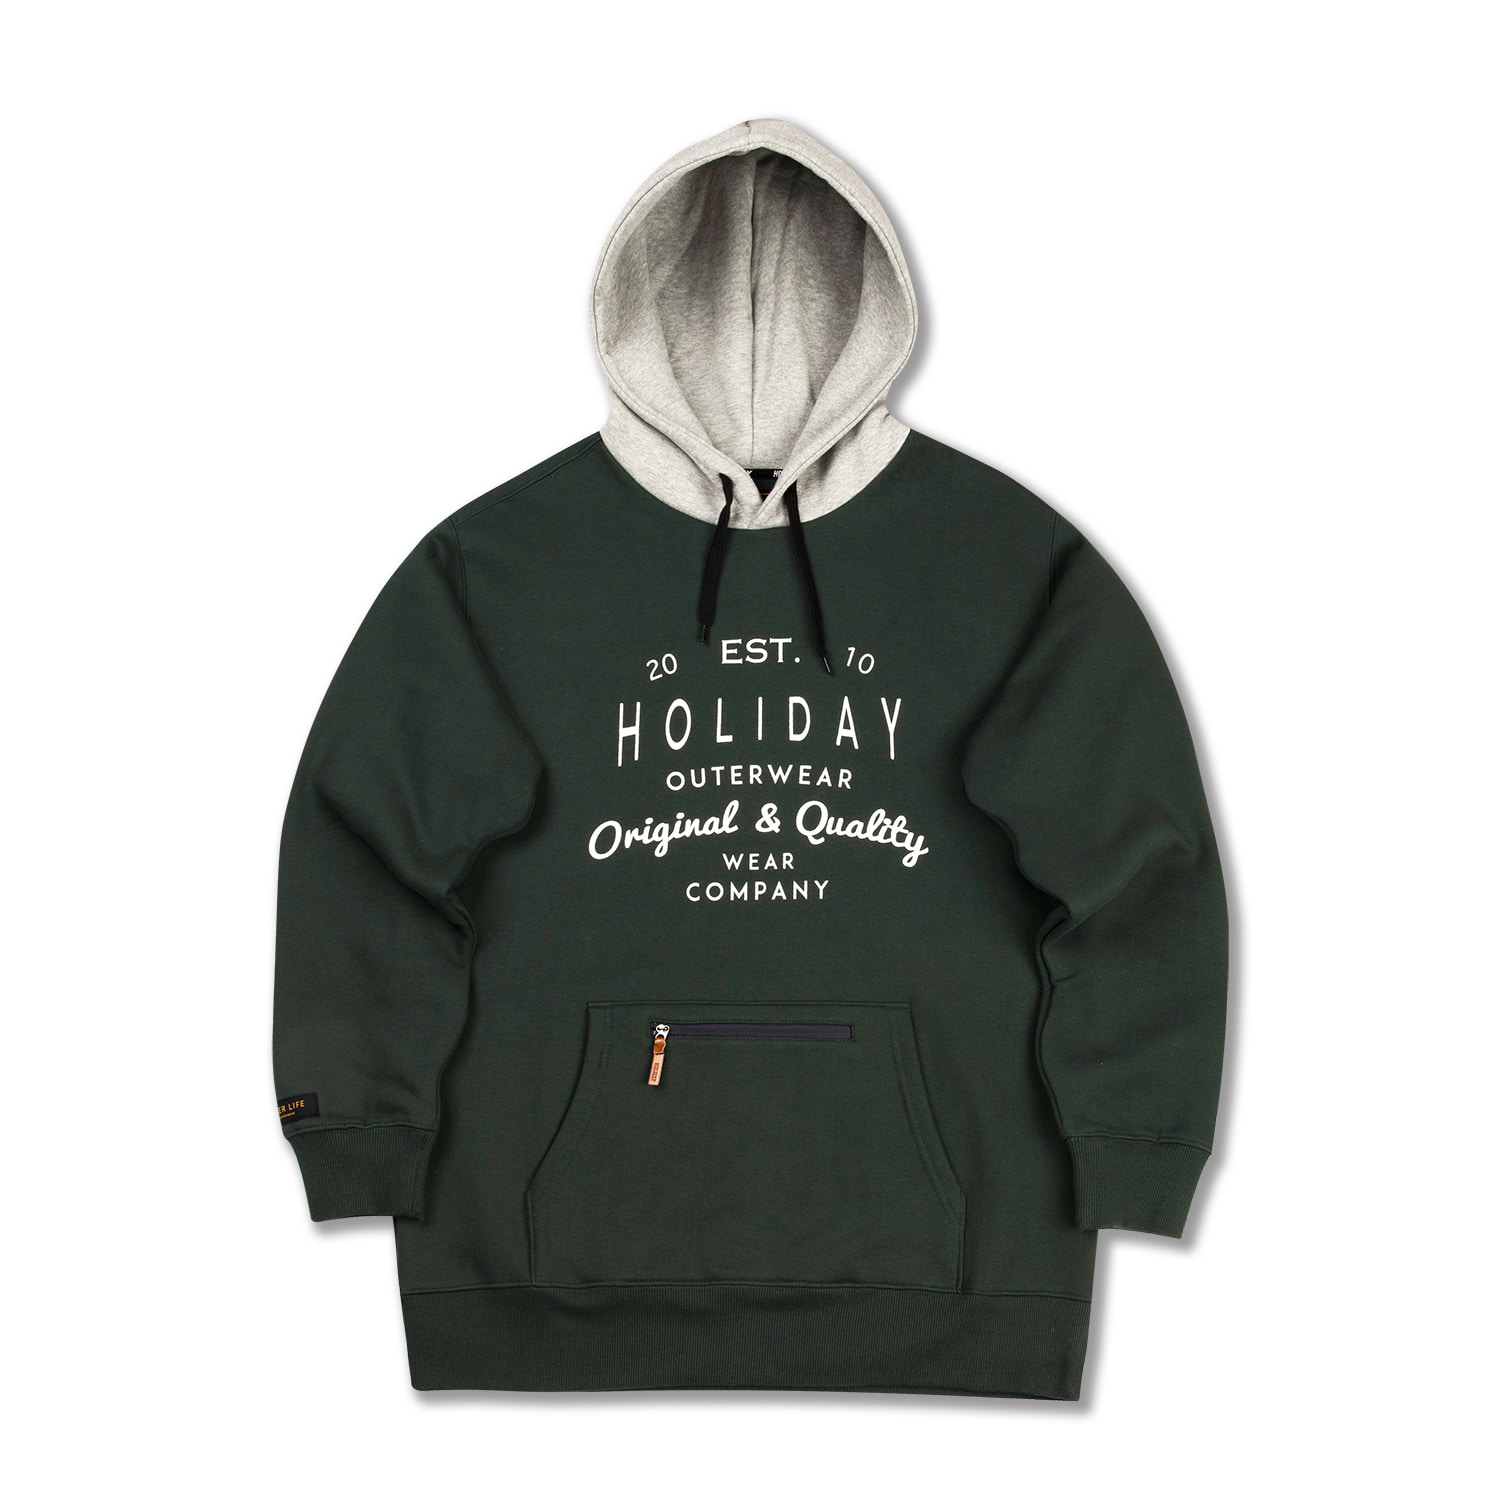 BLOOM hoodie - khakiHOLIDAY OUTERWEAR